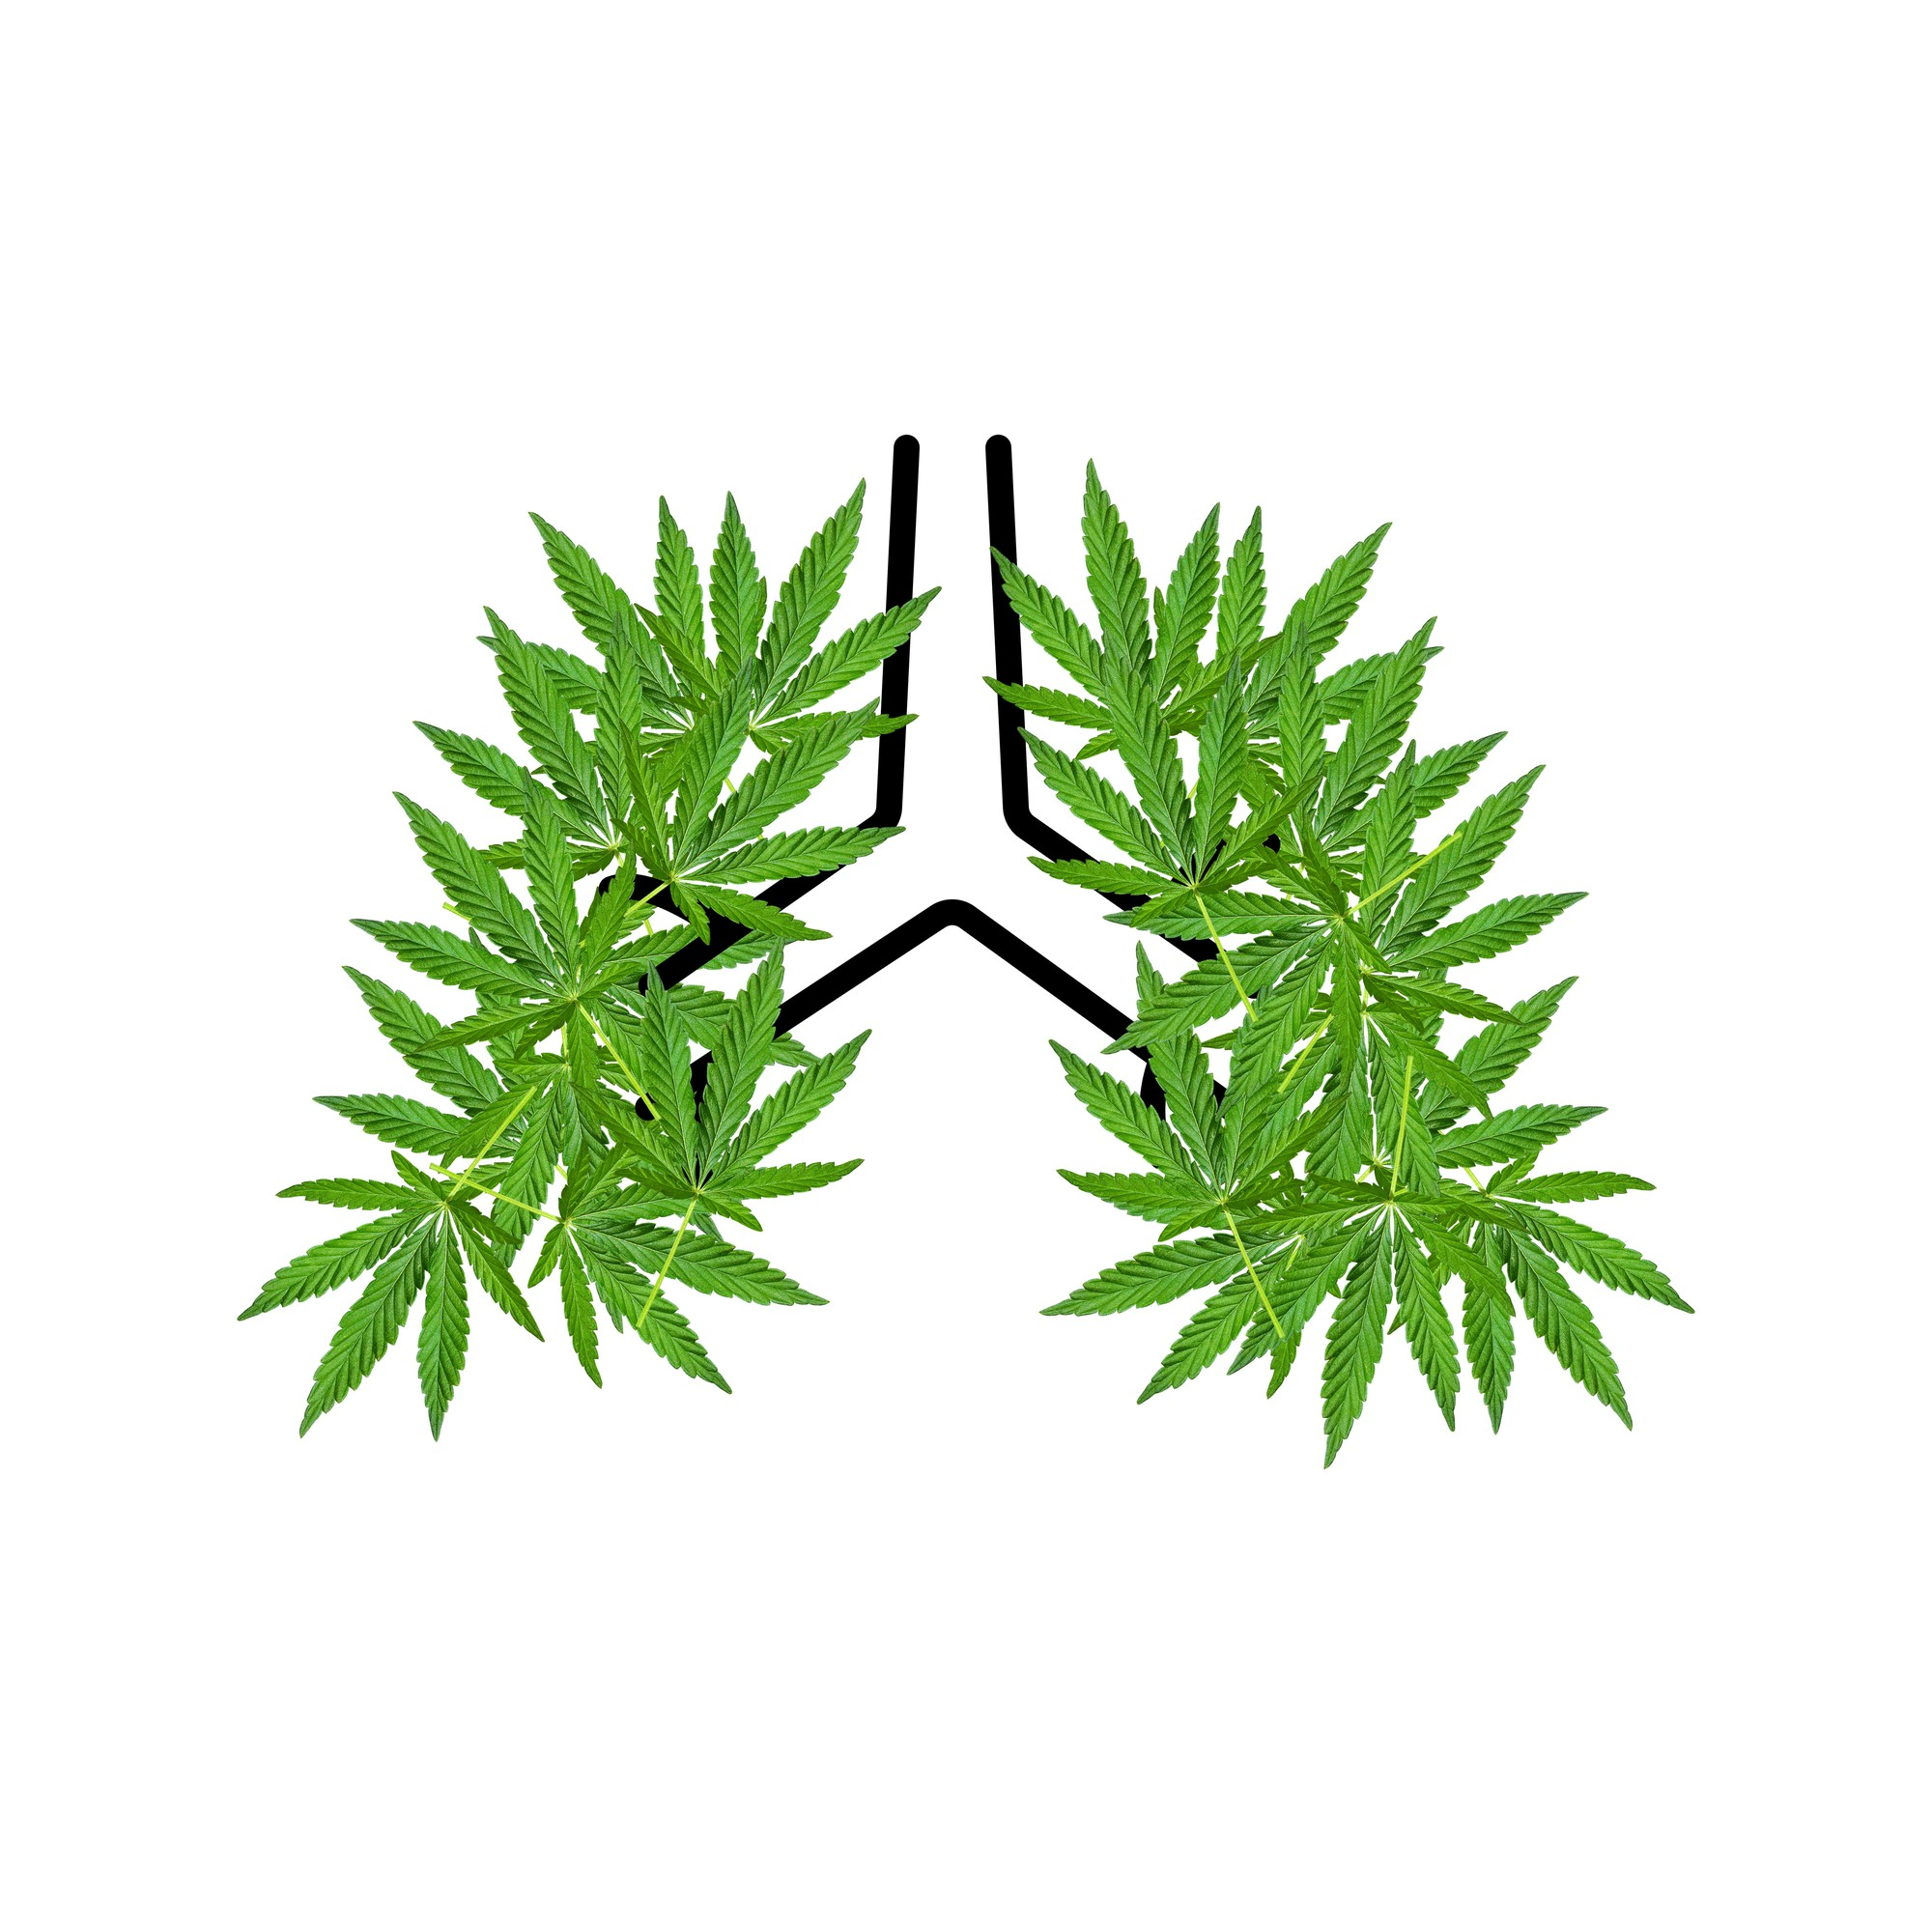 A drawing of lungs where the lungs are marijuana leaves